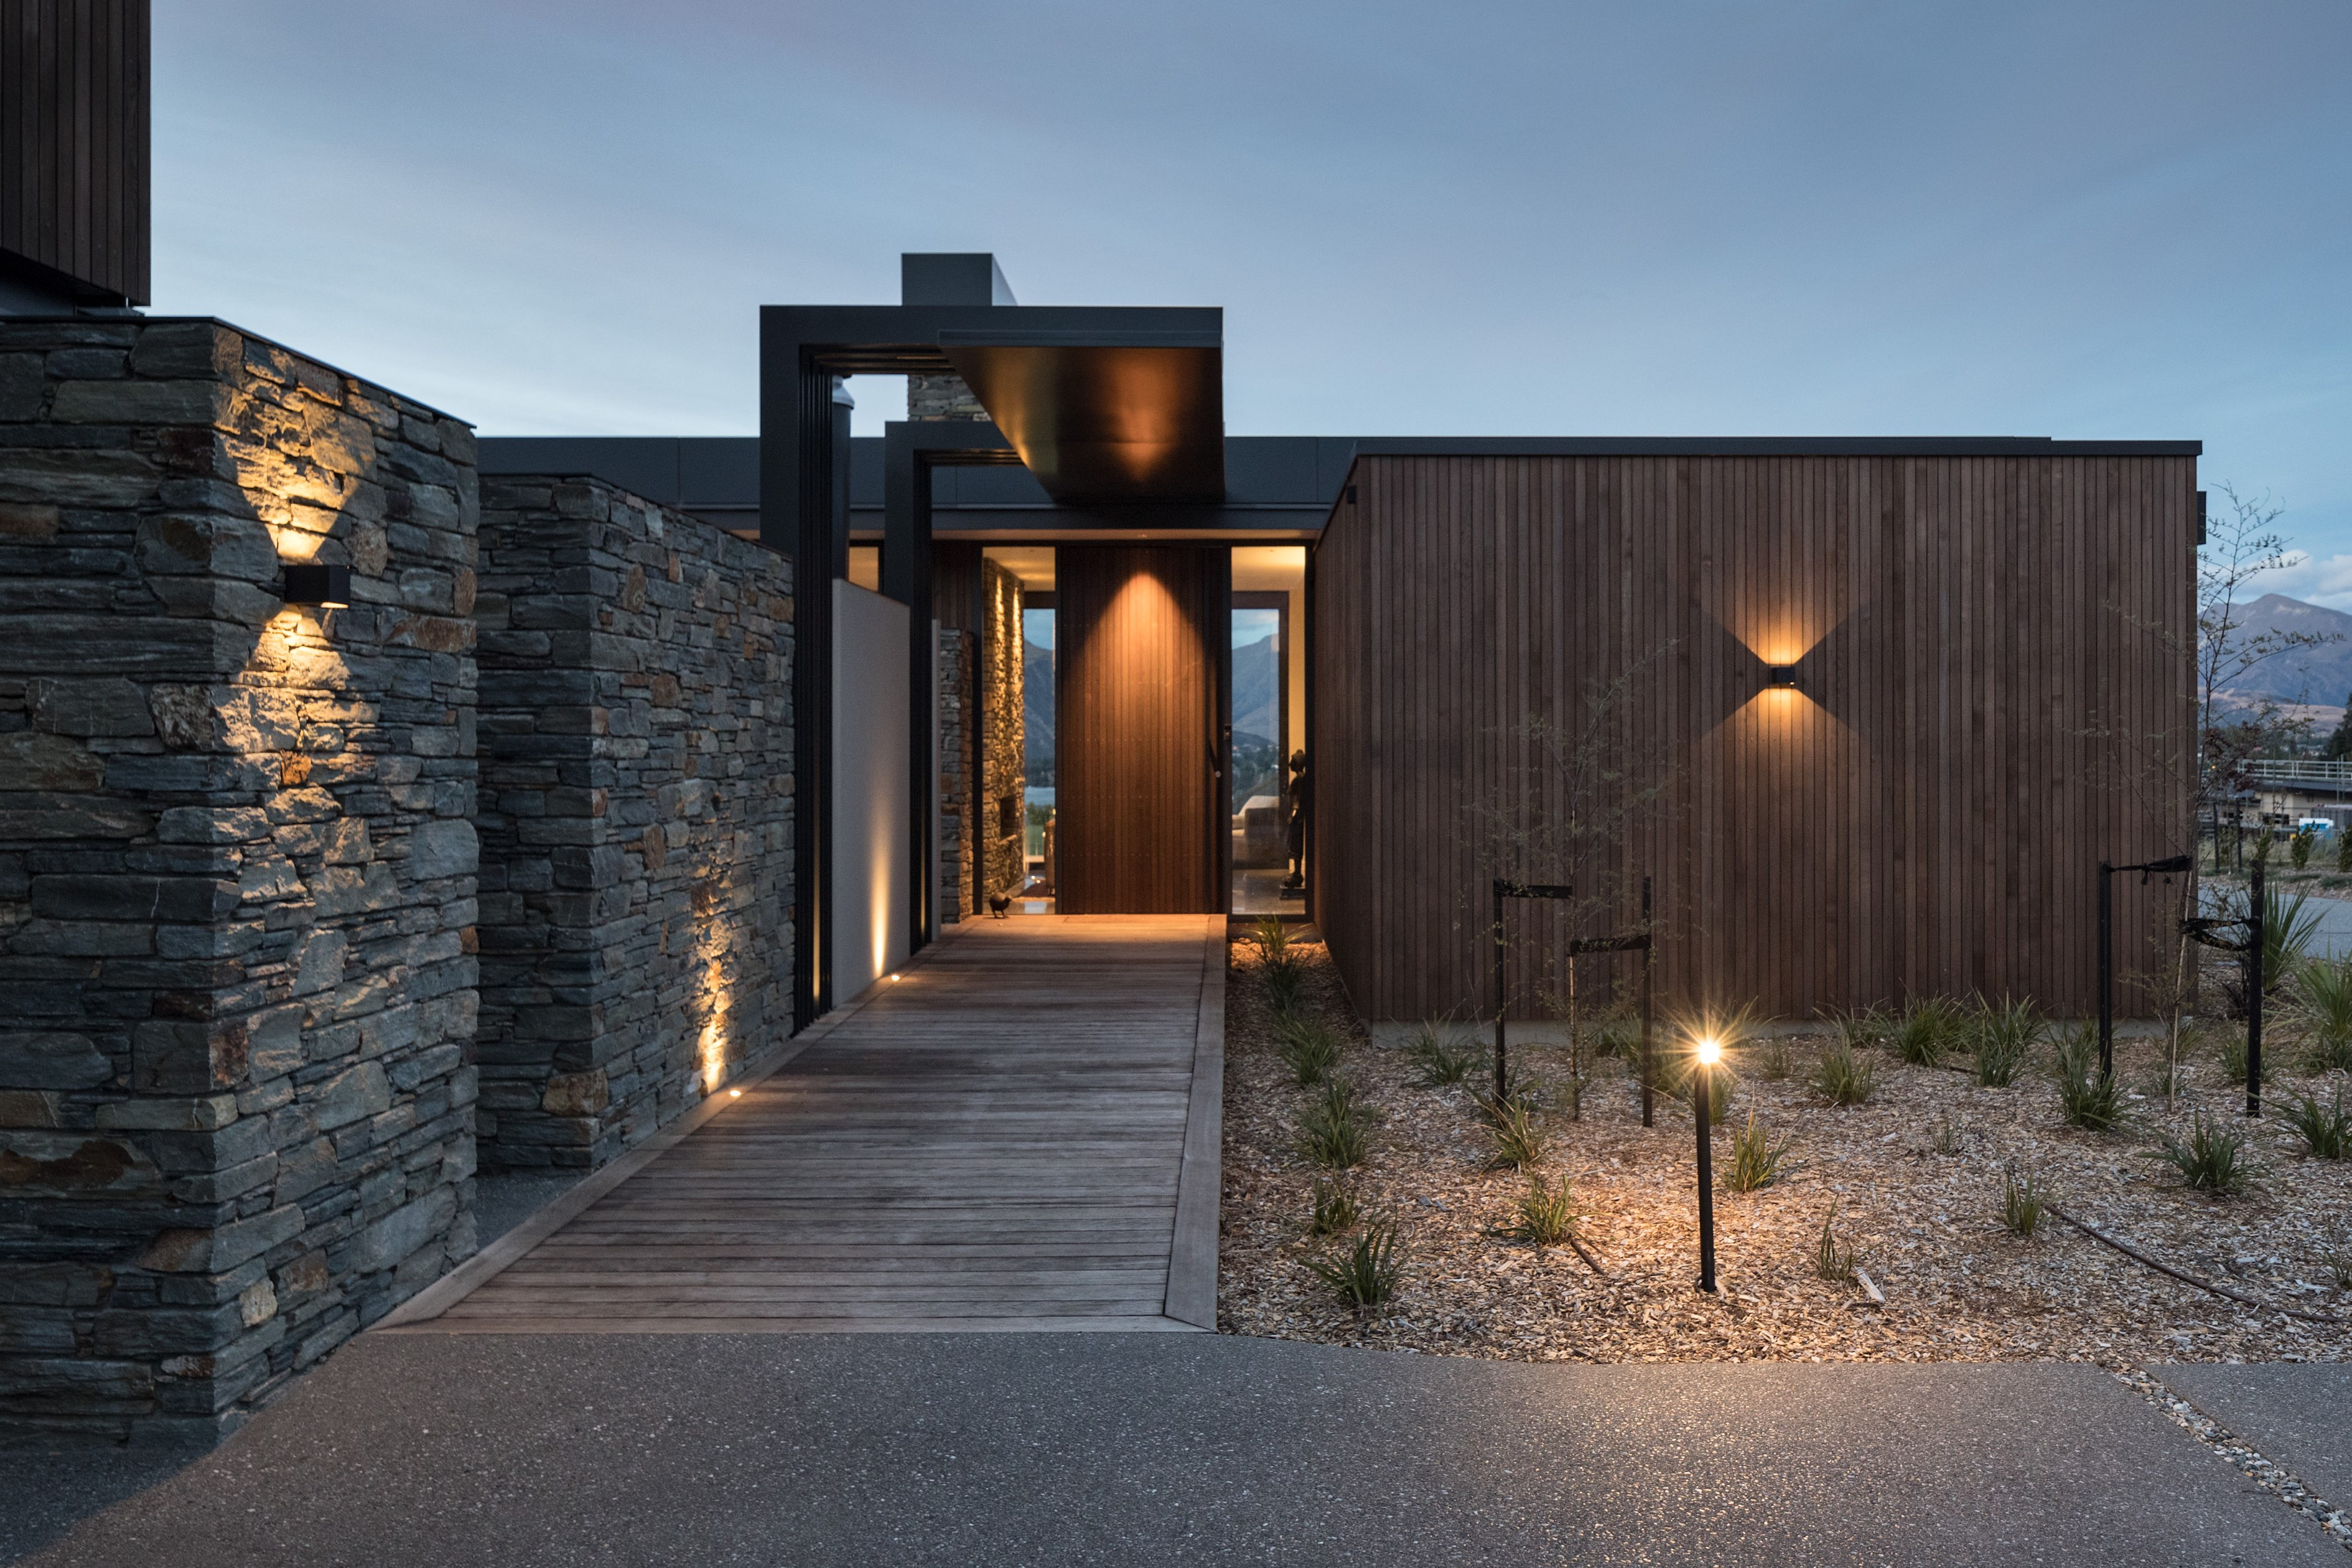 Exterior of modern Wanaka residence mixing stone, wood, and steel